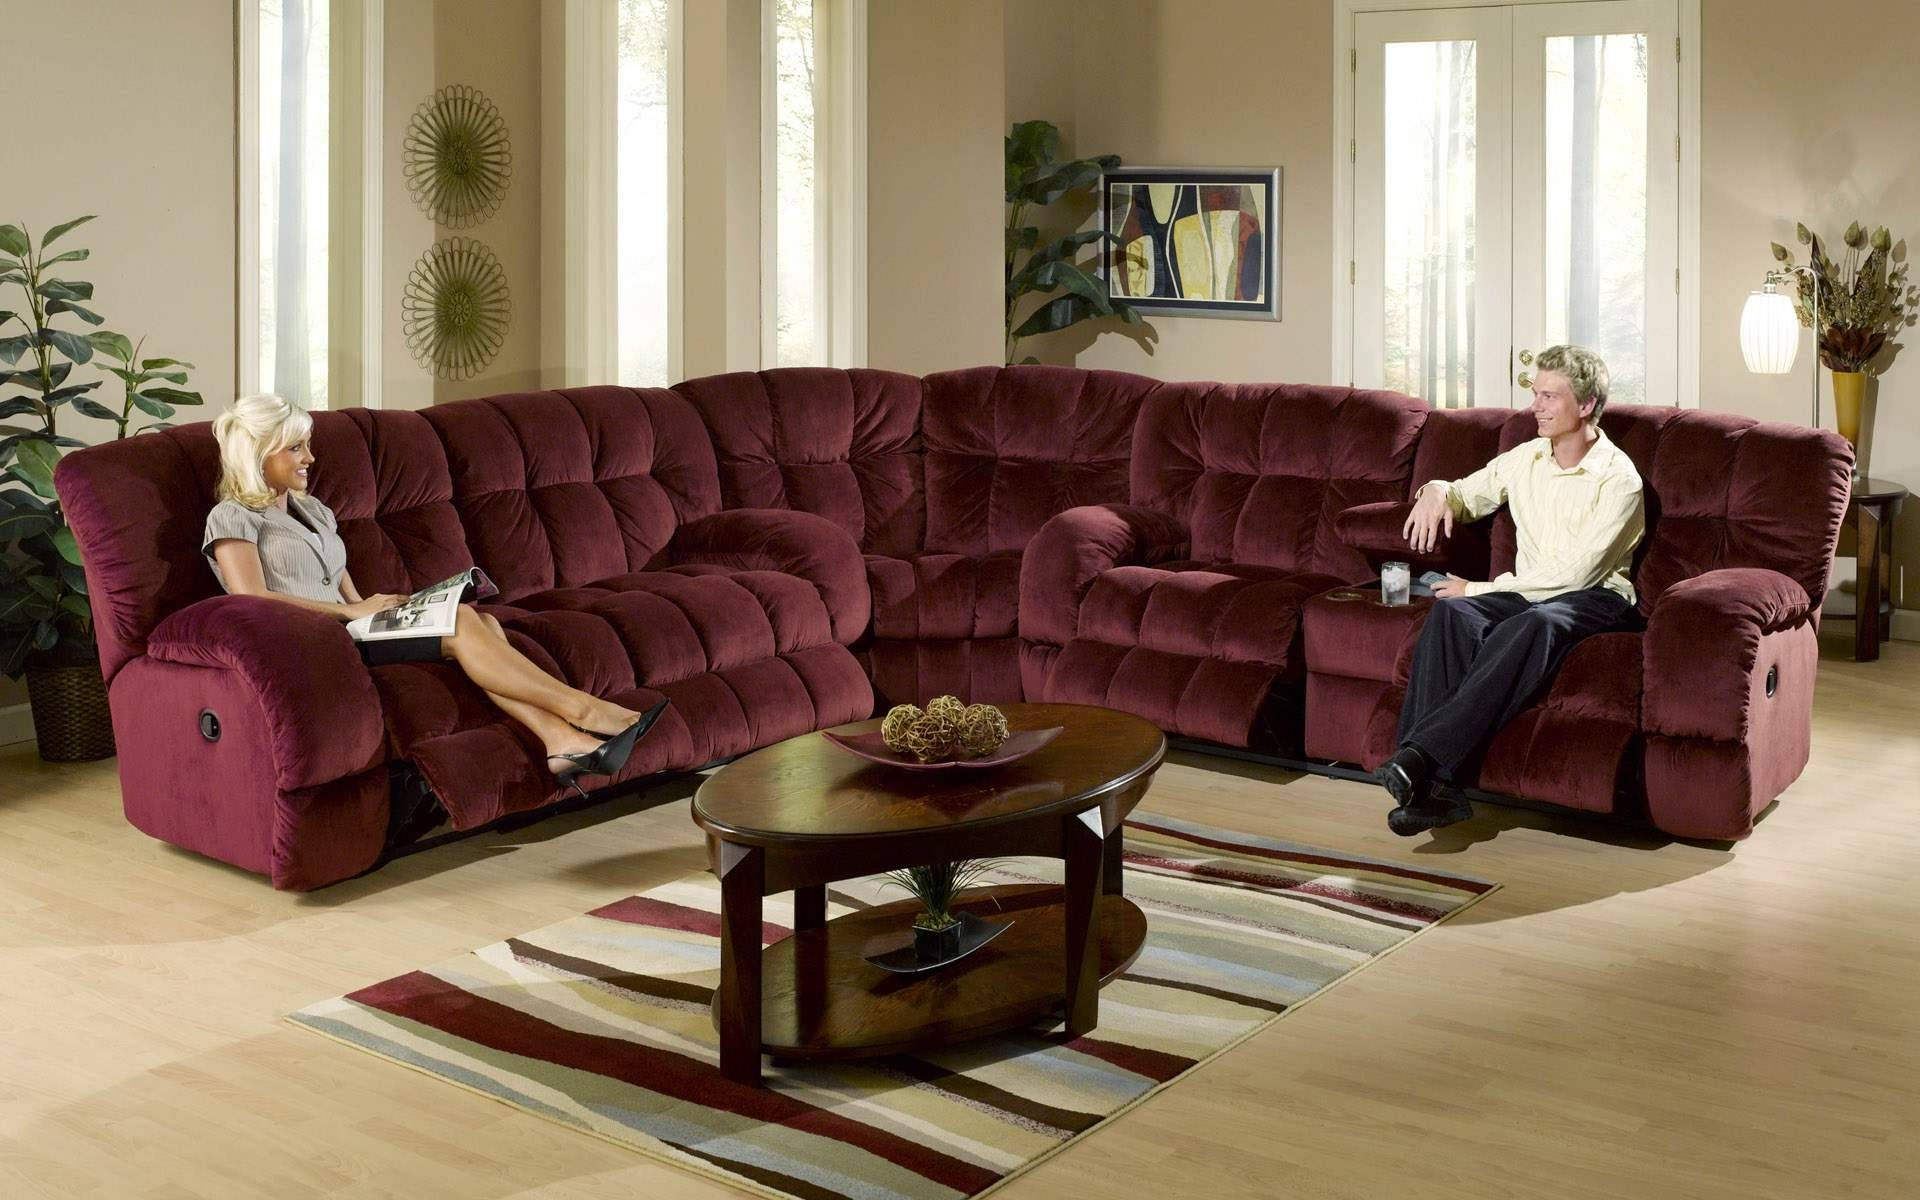 Sofas Center : Amazing High Quality Sectional Sofa Pictures within Quality Sectional Sofa (Image 21 of 30)